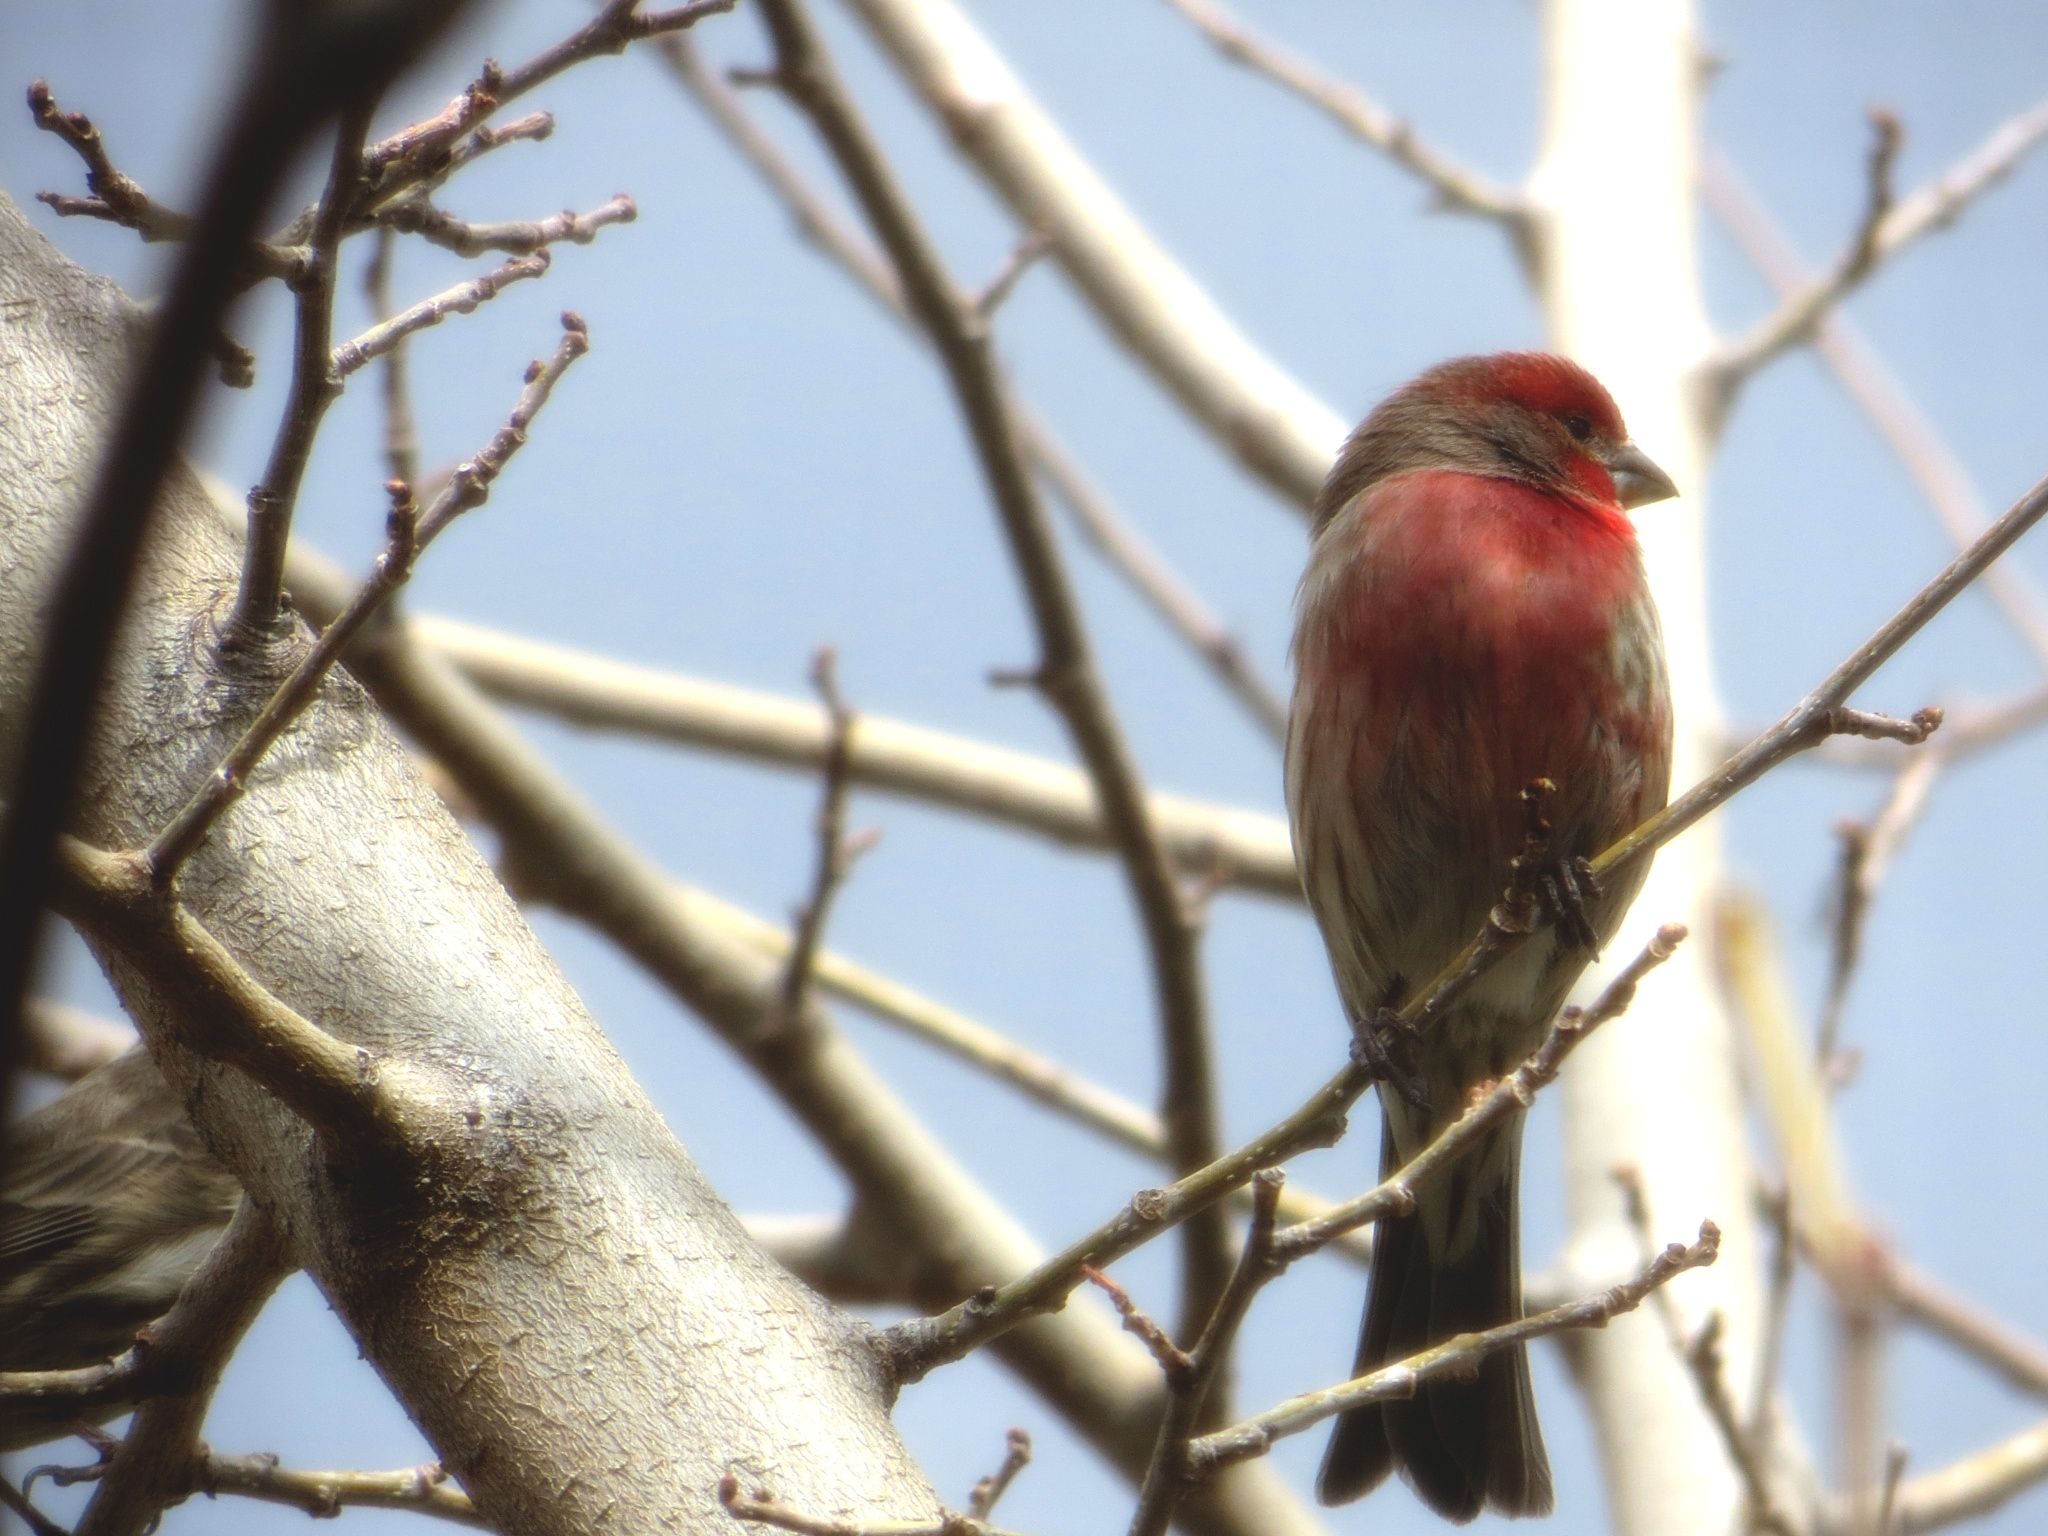 Red house finch - A red house finch in winter.